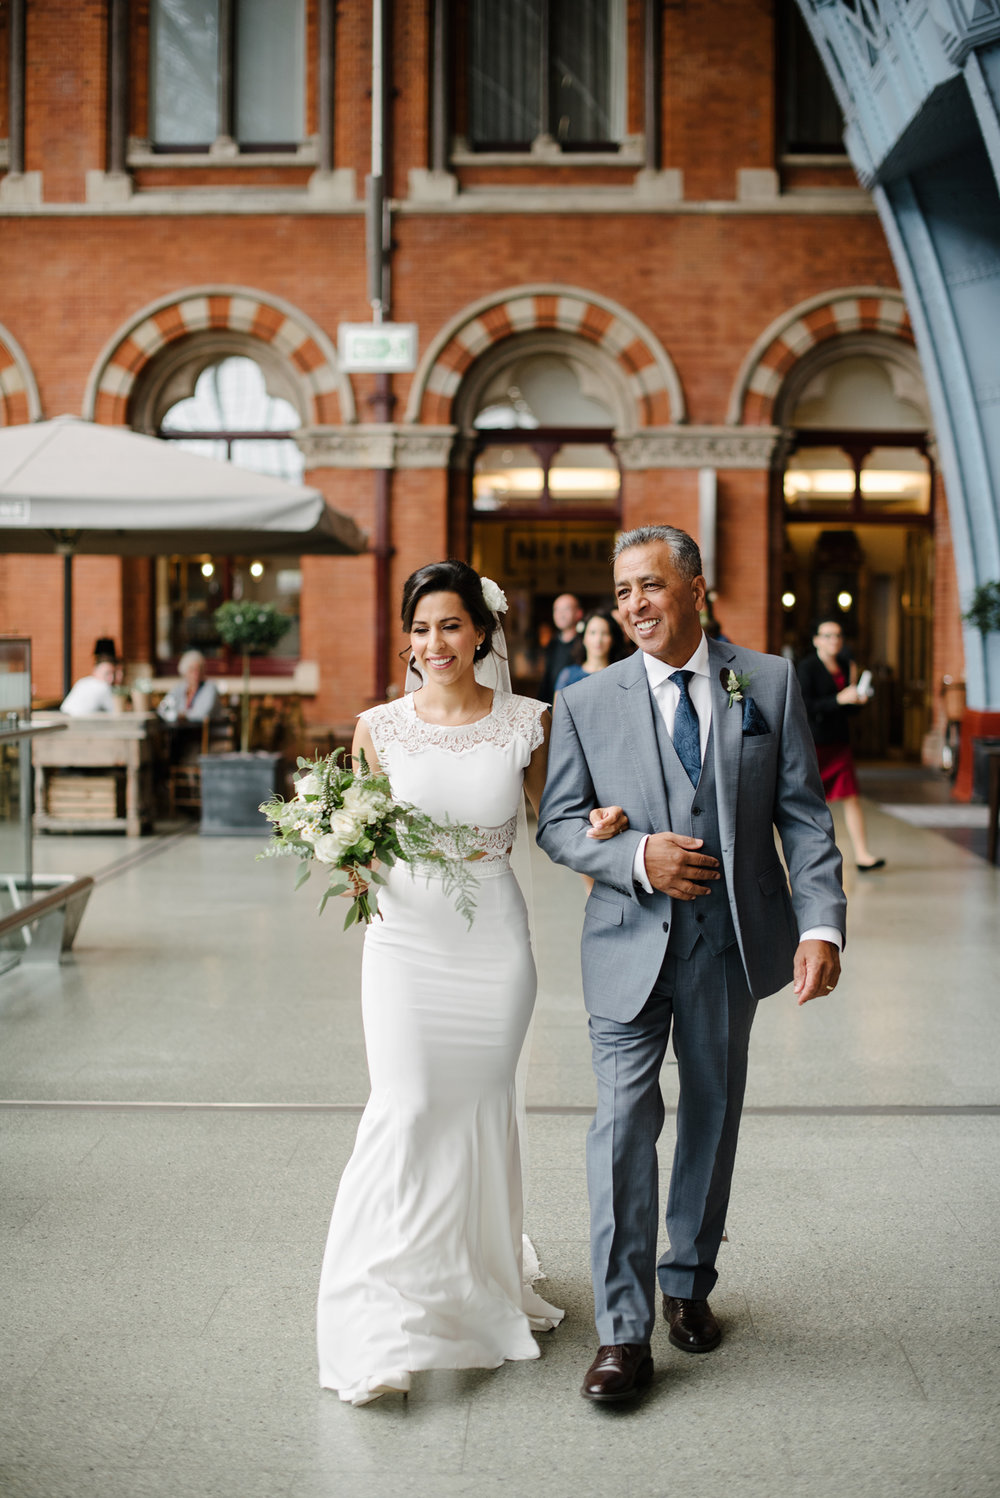 St.Pancras-London-wedding-photographer-53.jpg